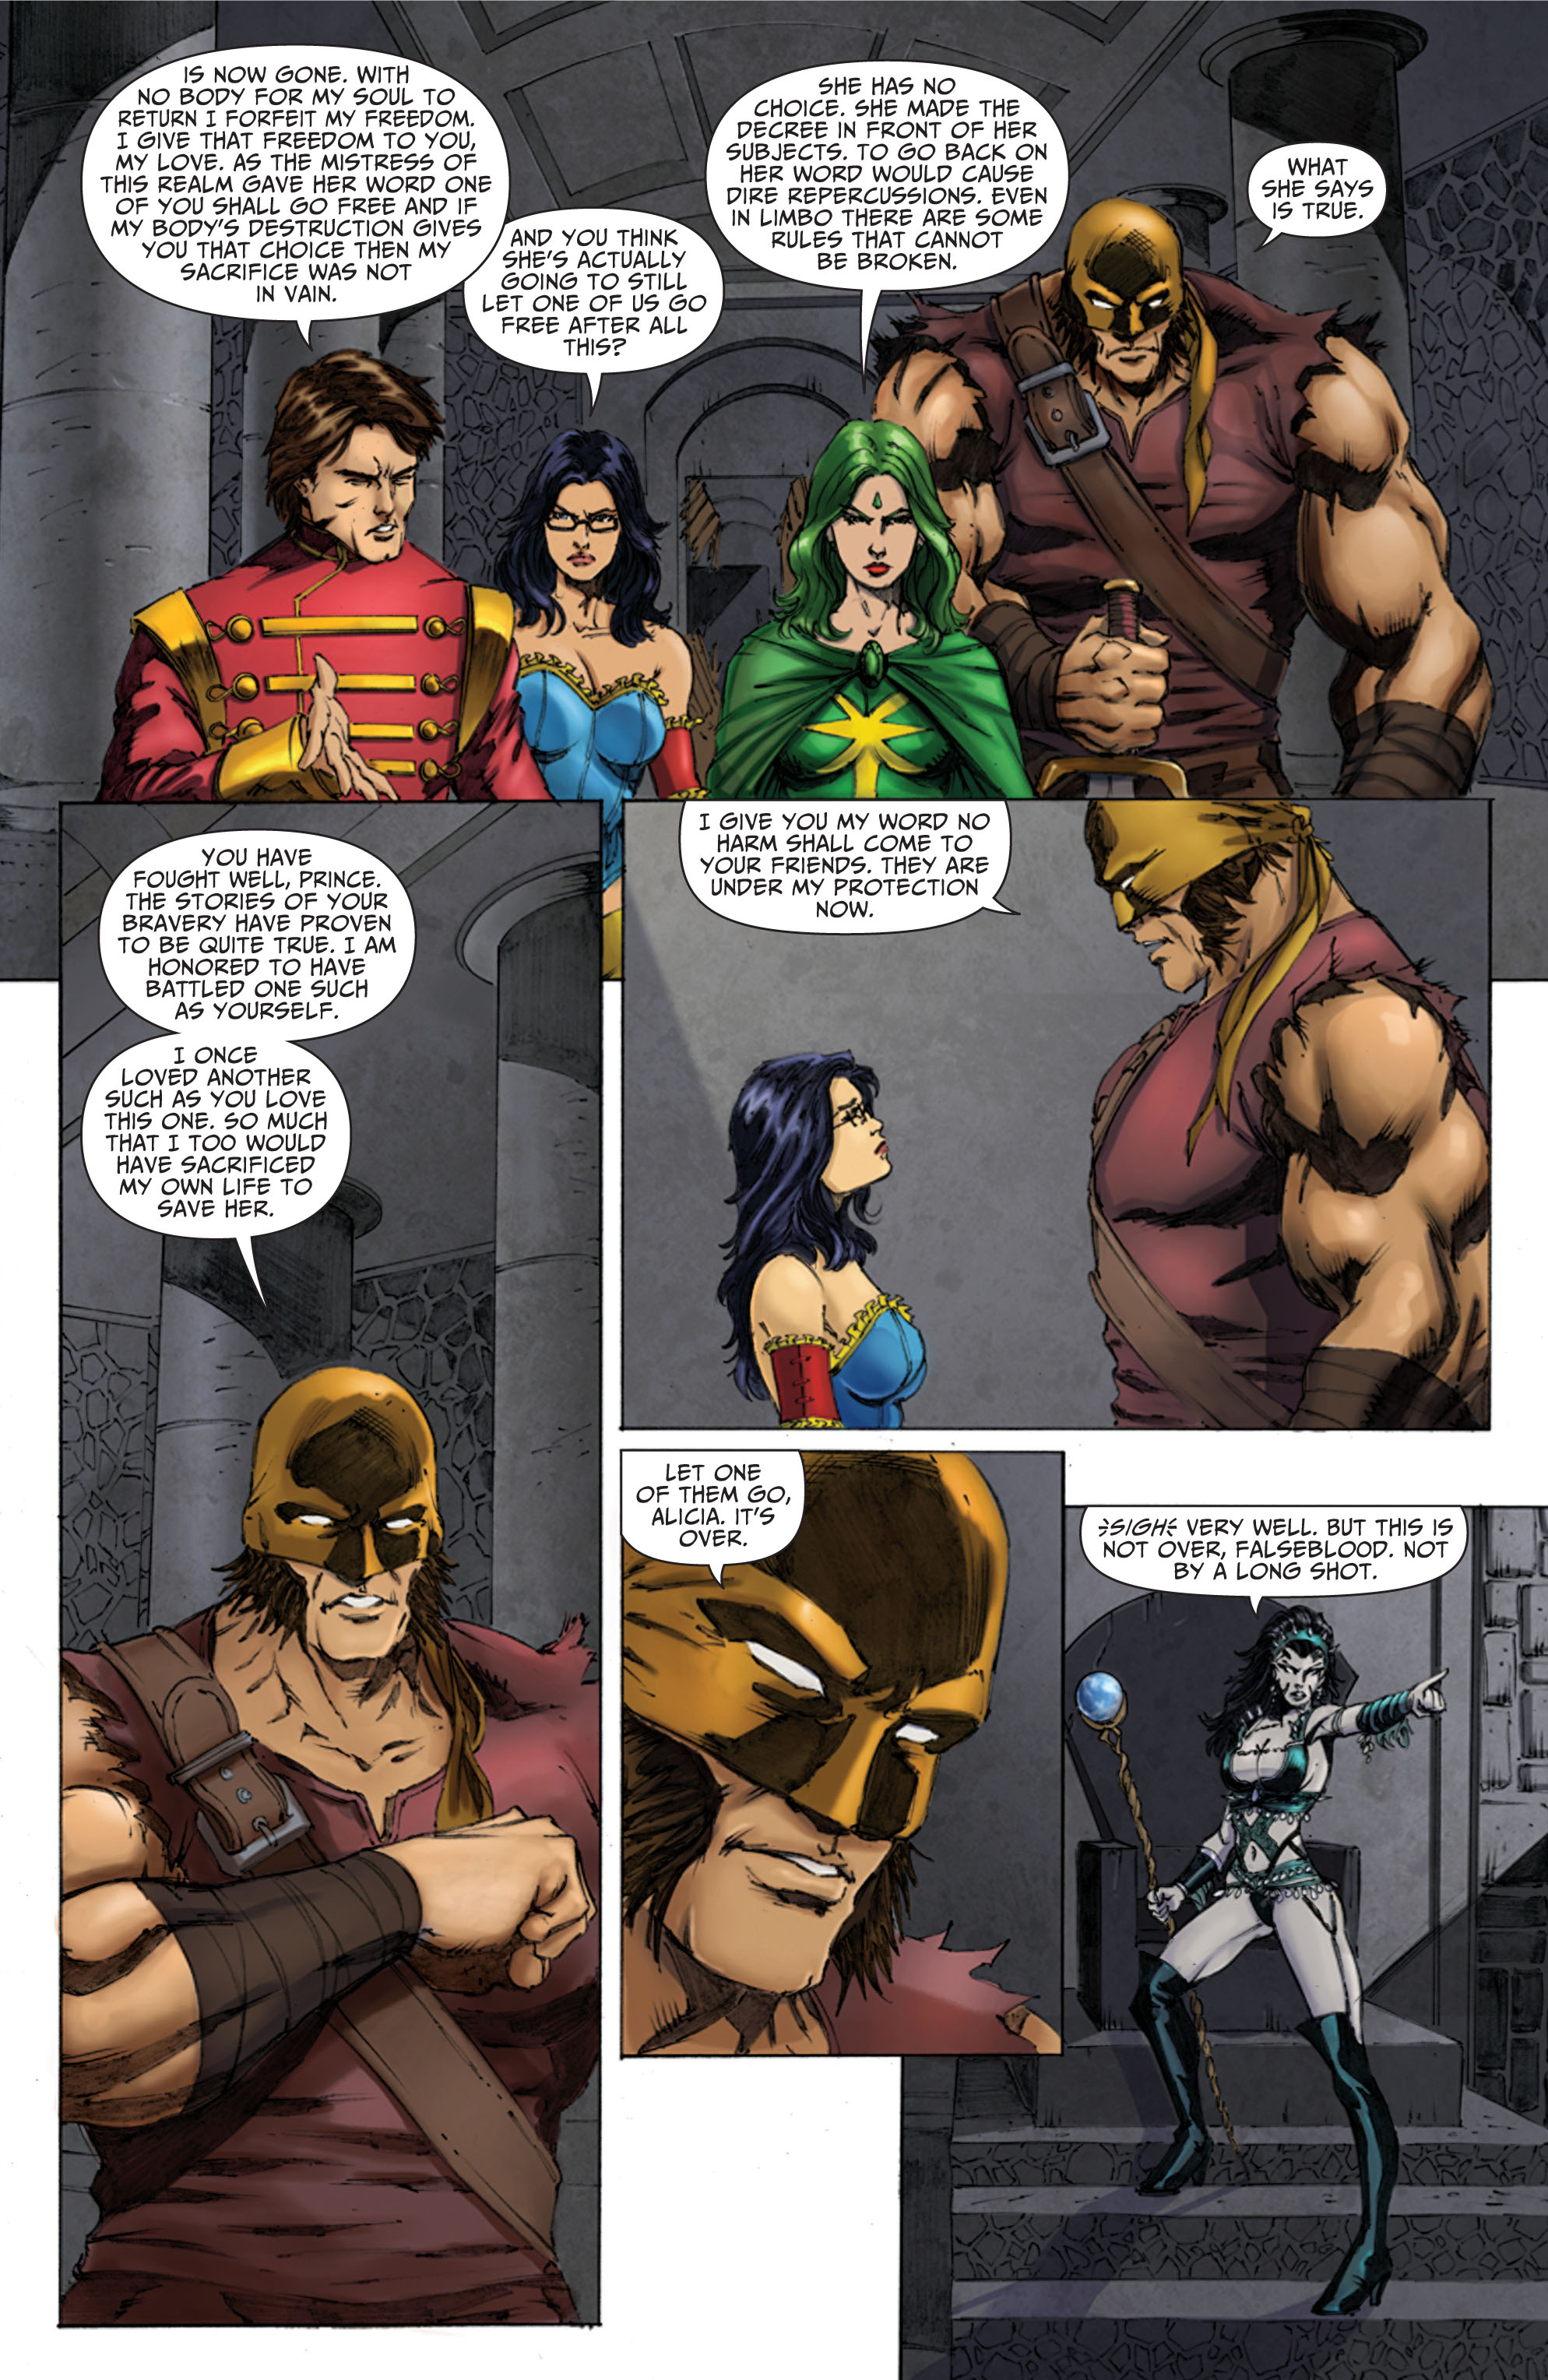 Grimm Fairy Tales (2005) Issue #70 #73 - English 21